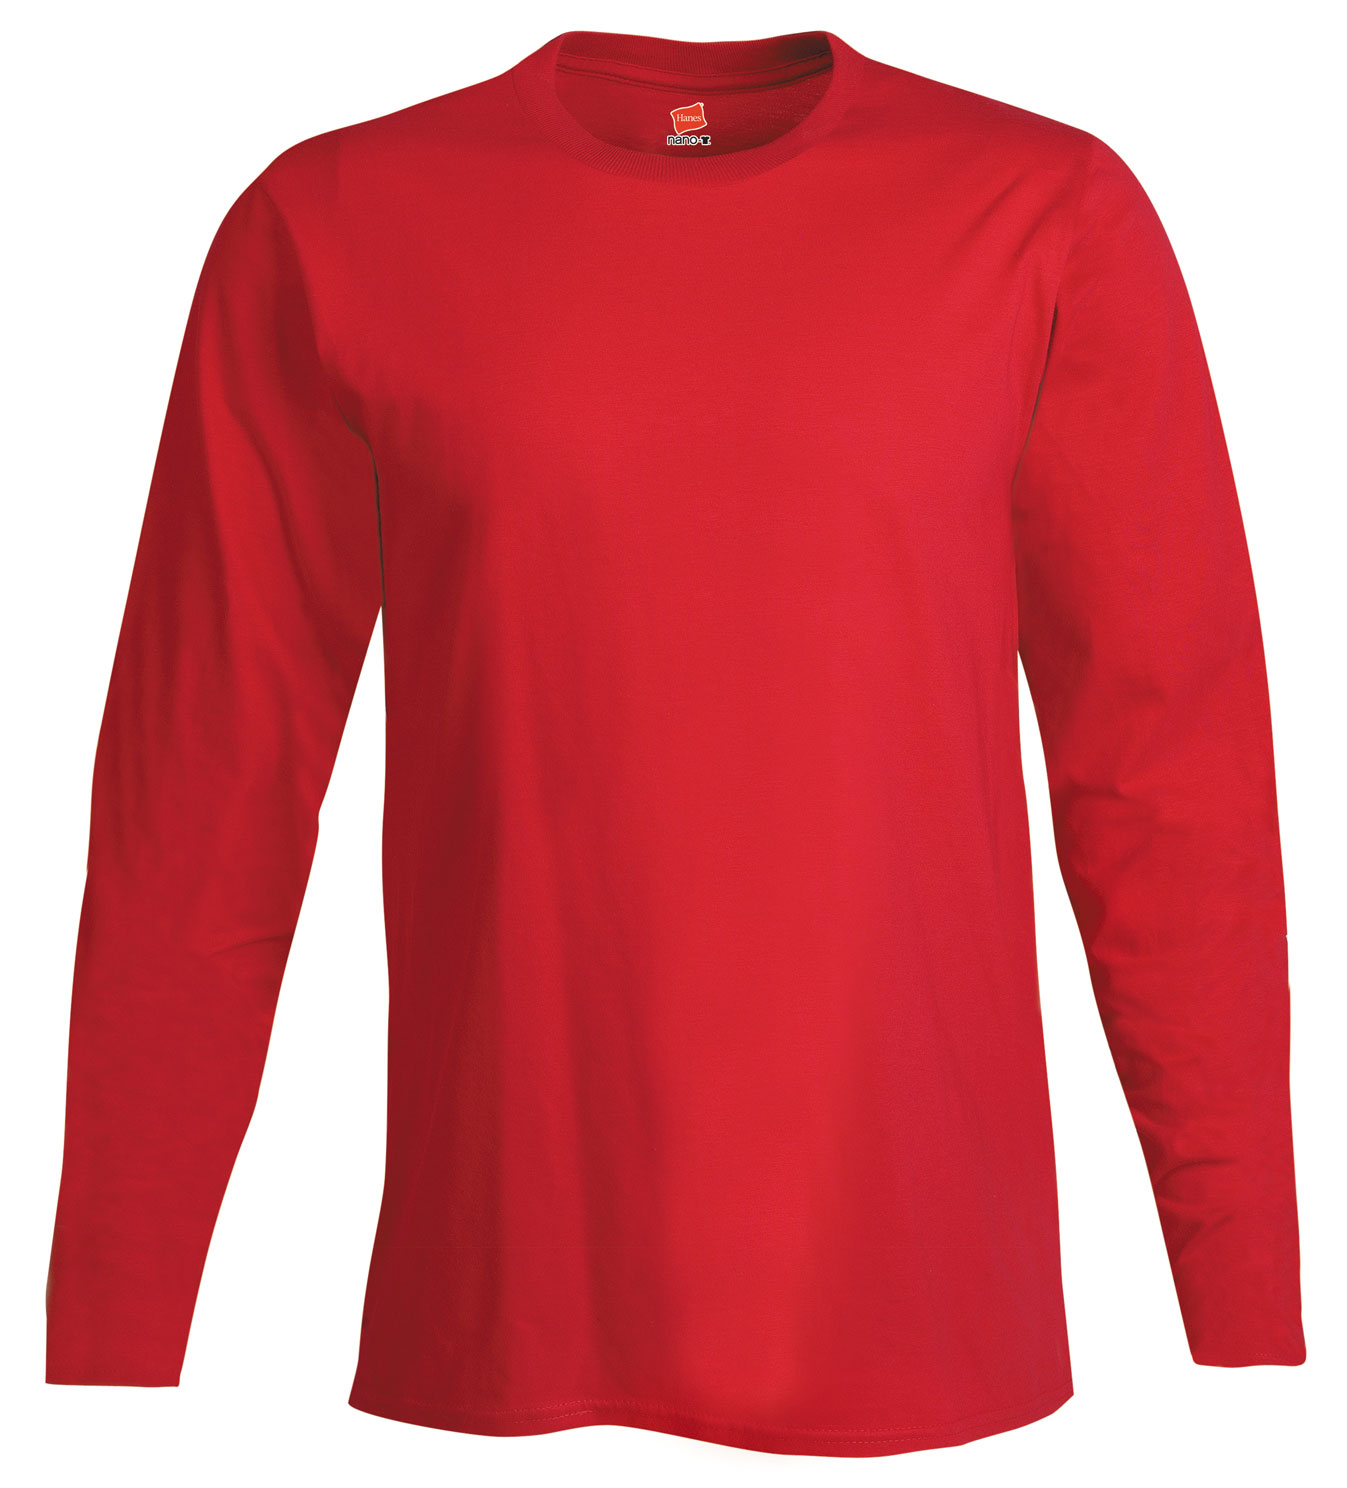 Hanes Adult 4.5 oz. Ringspun Cotton Nano-T® Long-Sleeve T-Shirt